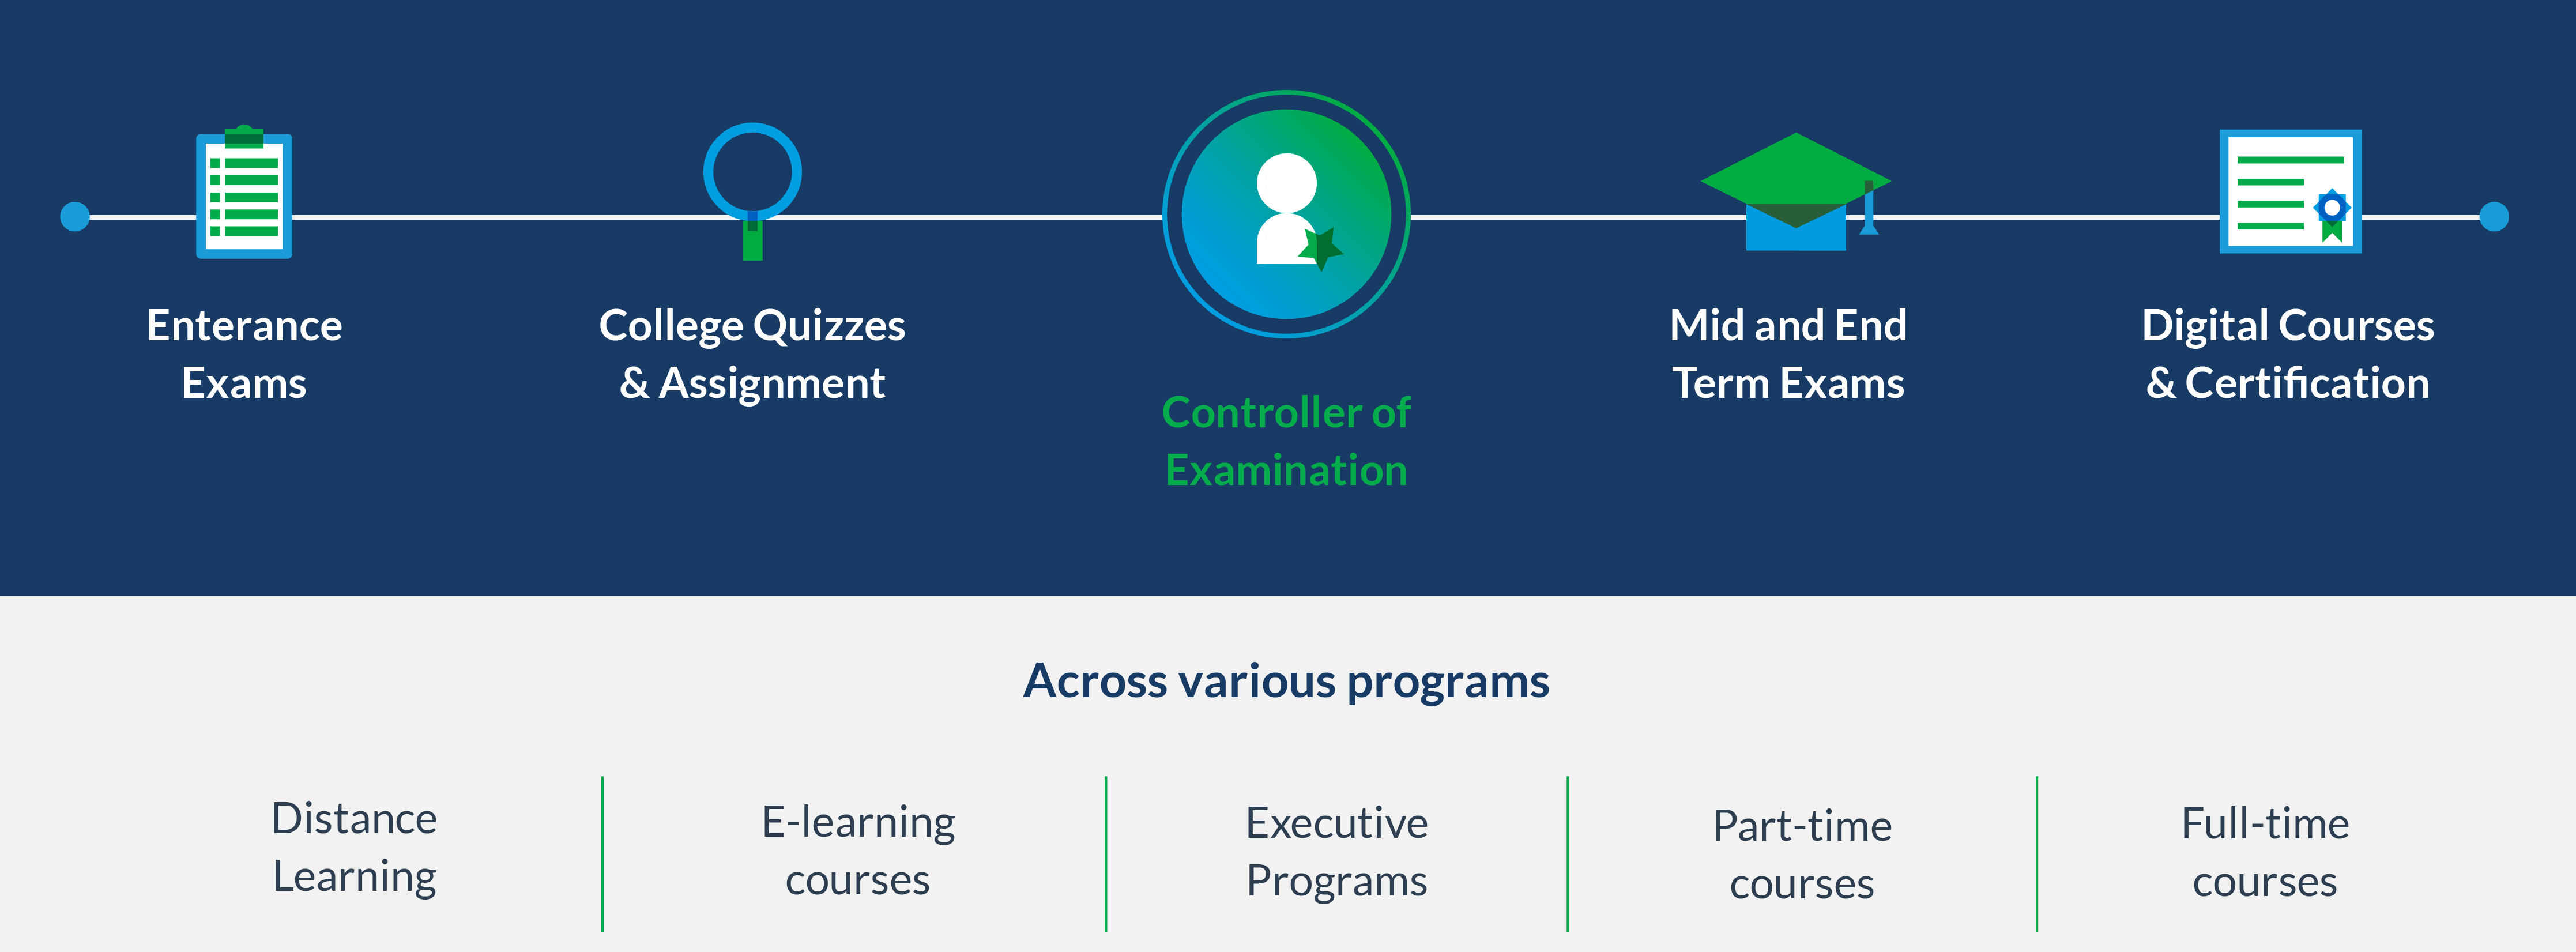 Why choose Mercer | Mettl's online examination system